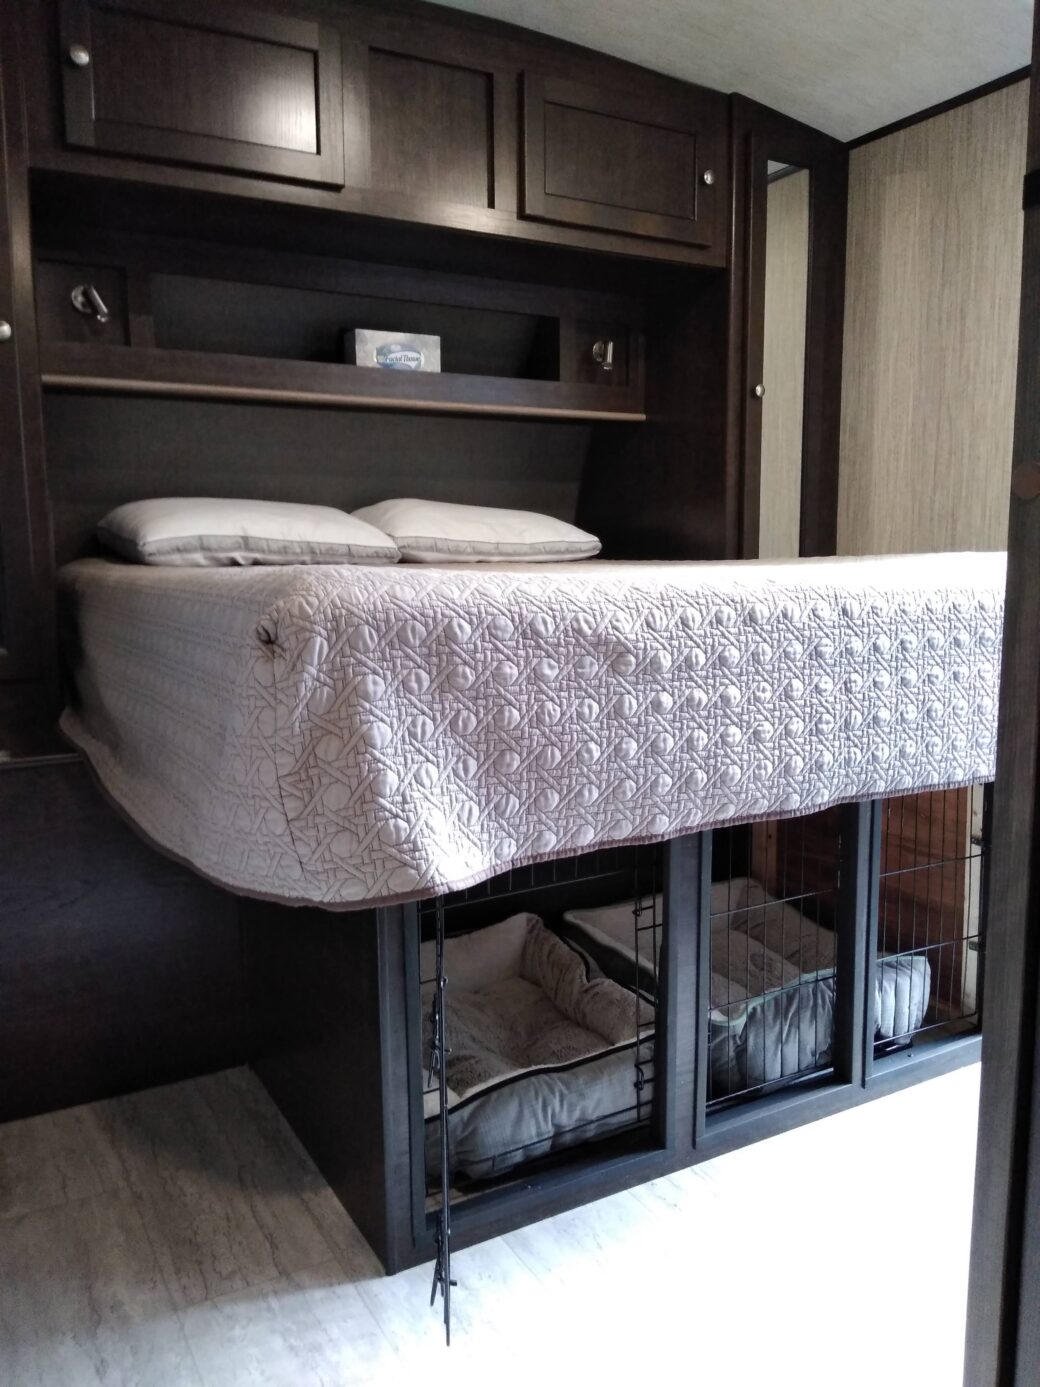 How To Add A Diy Dog Kennel Under Your Rv Bed